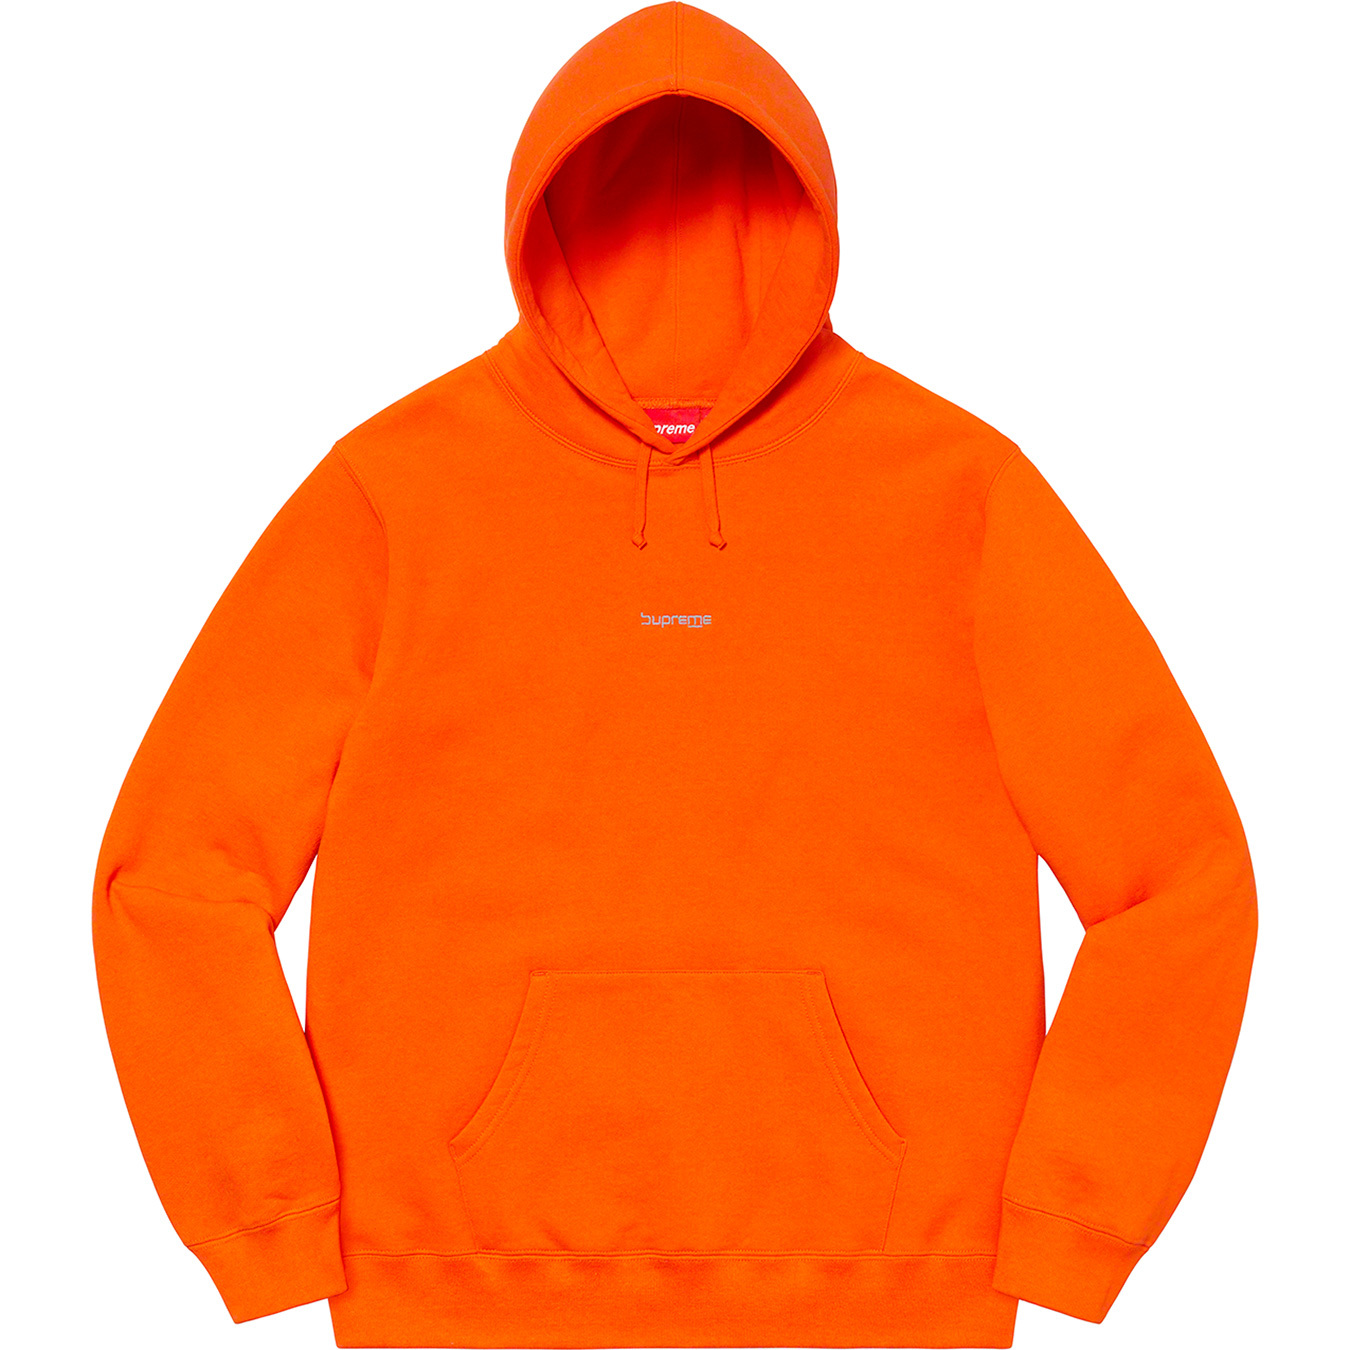 supreme-20ss-spring-summer-digital-logo-hooded-sweatshirt